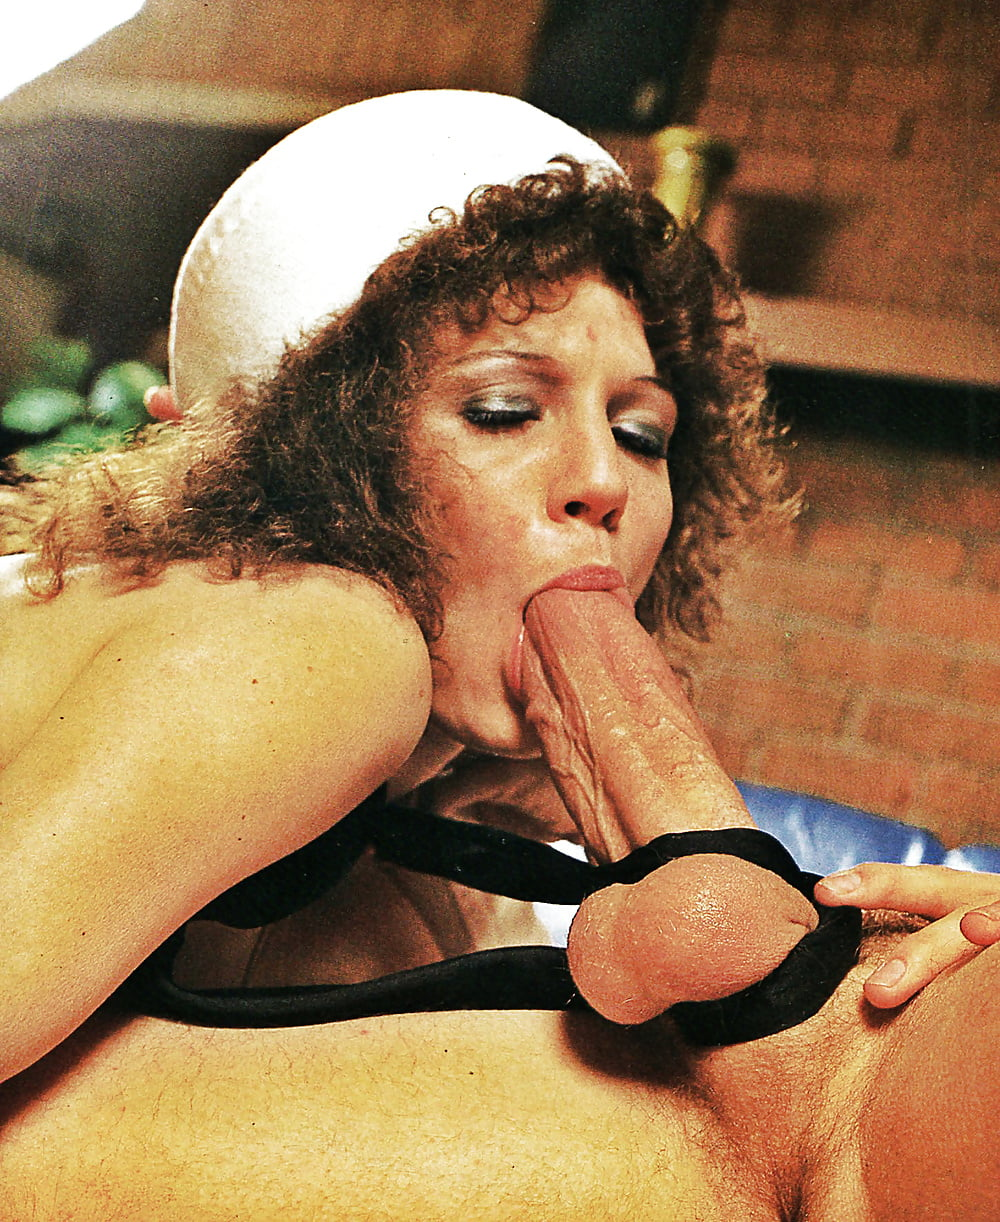 Vintage women sucking big shaft #12